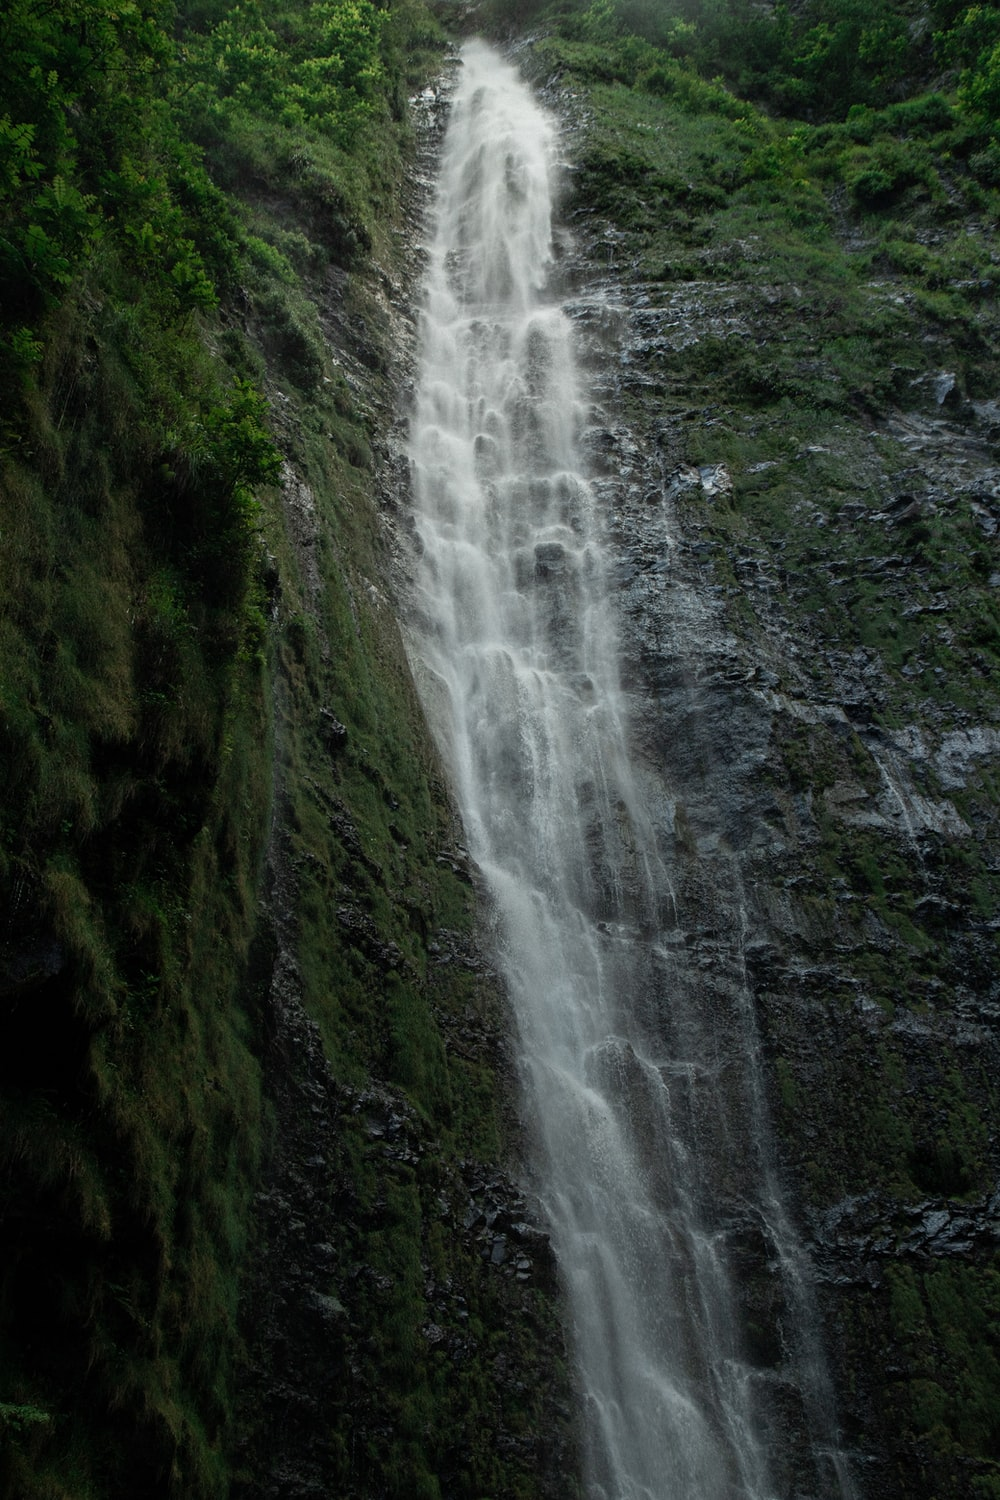 waterfall during daytime